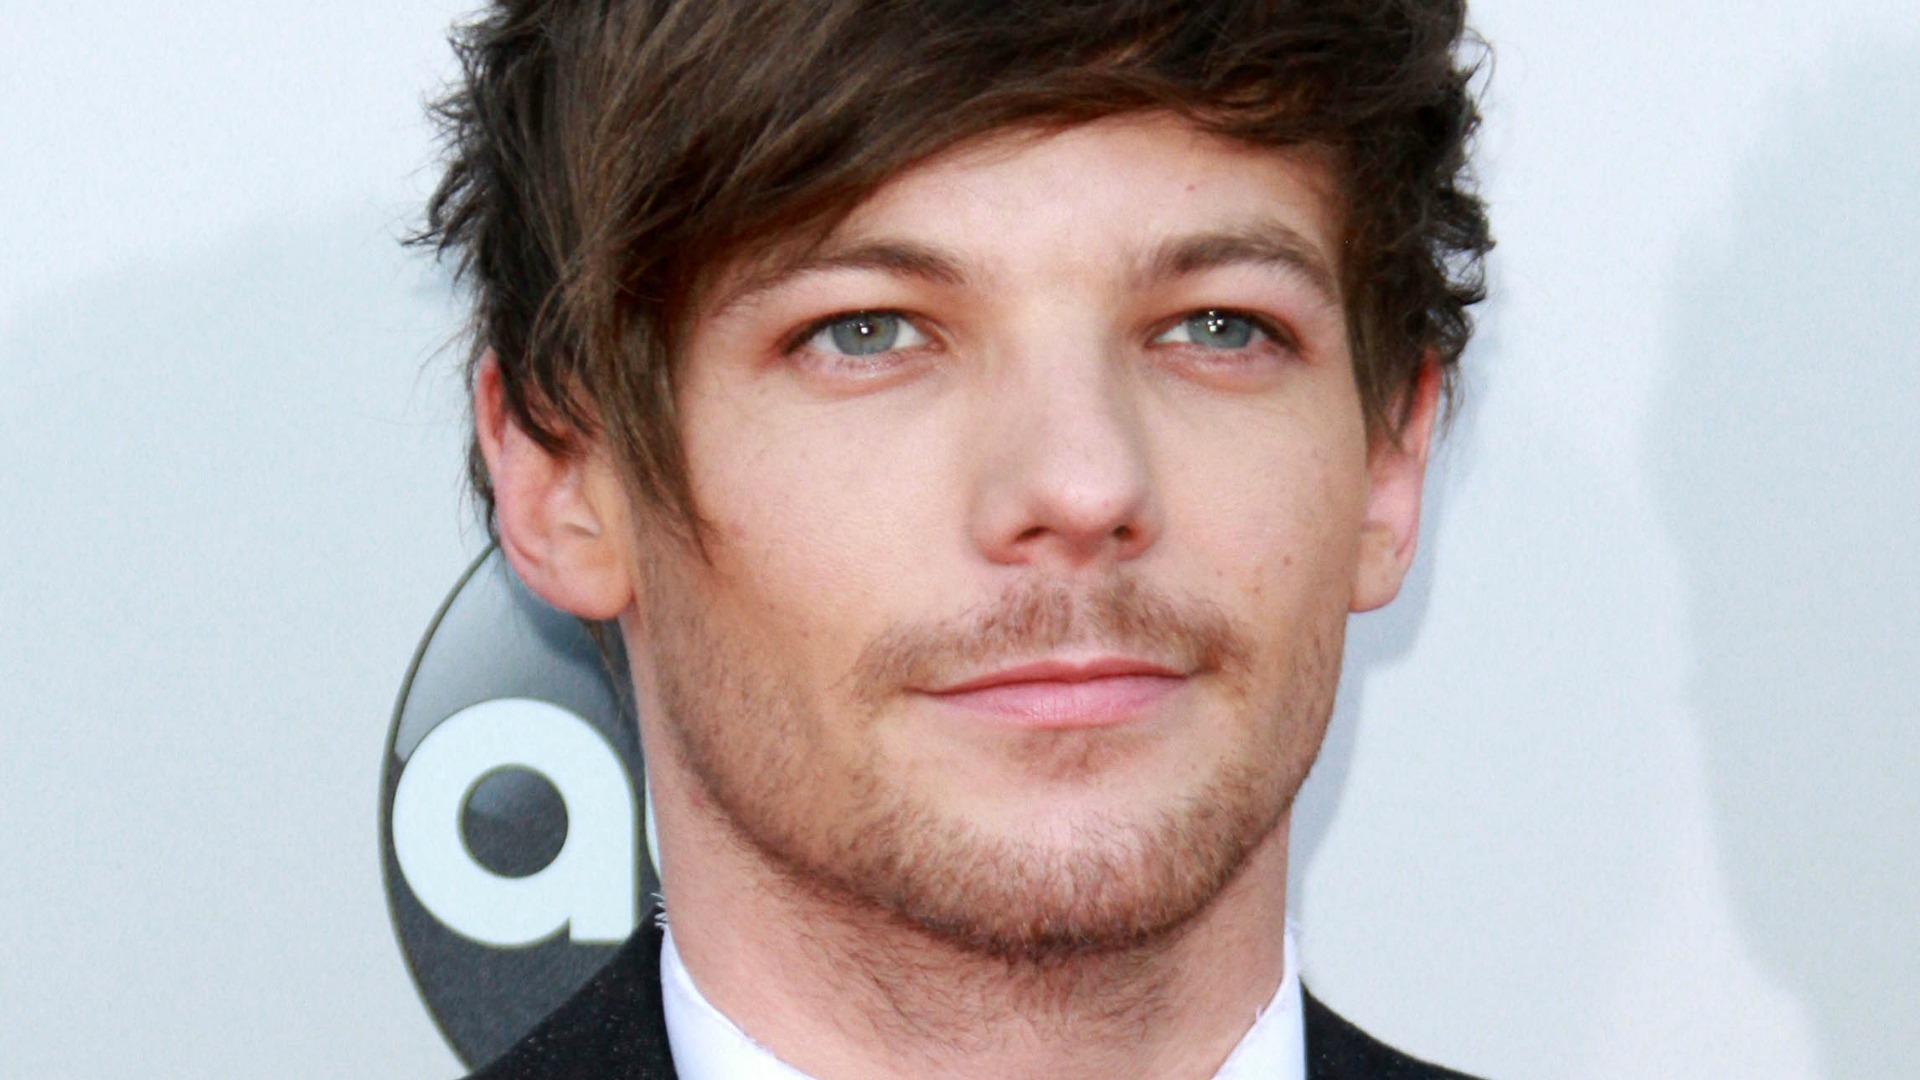 Louis Tomlinson Wallpaper: Louis Tomlinson Wallpapers Images Photos Pictures Backgrounds